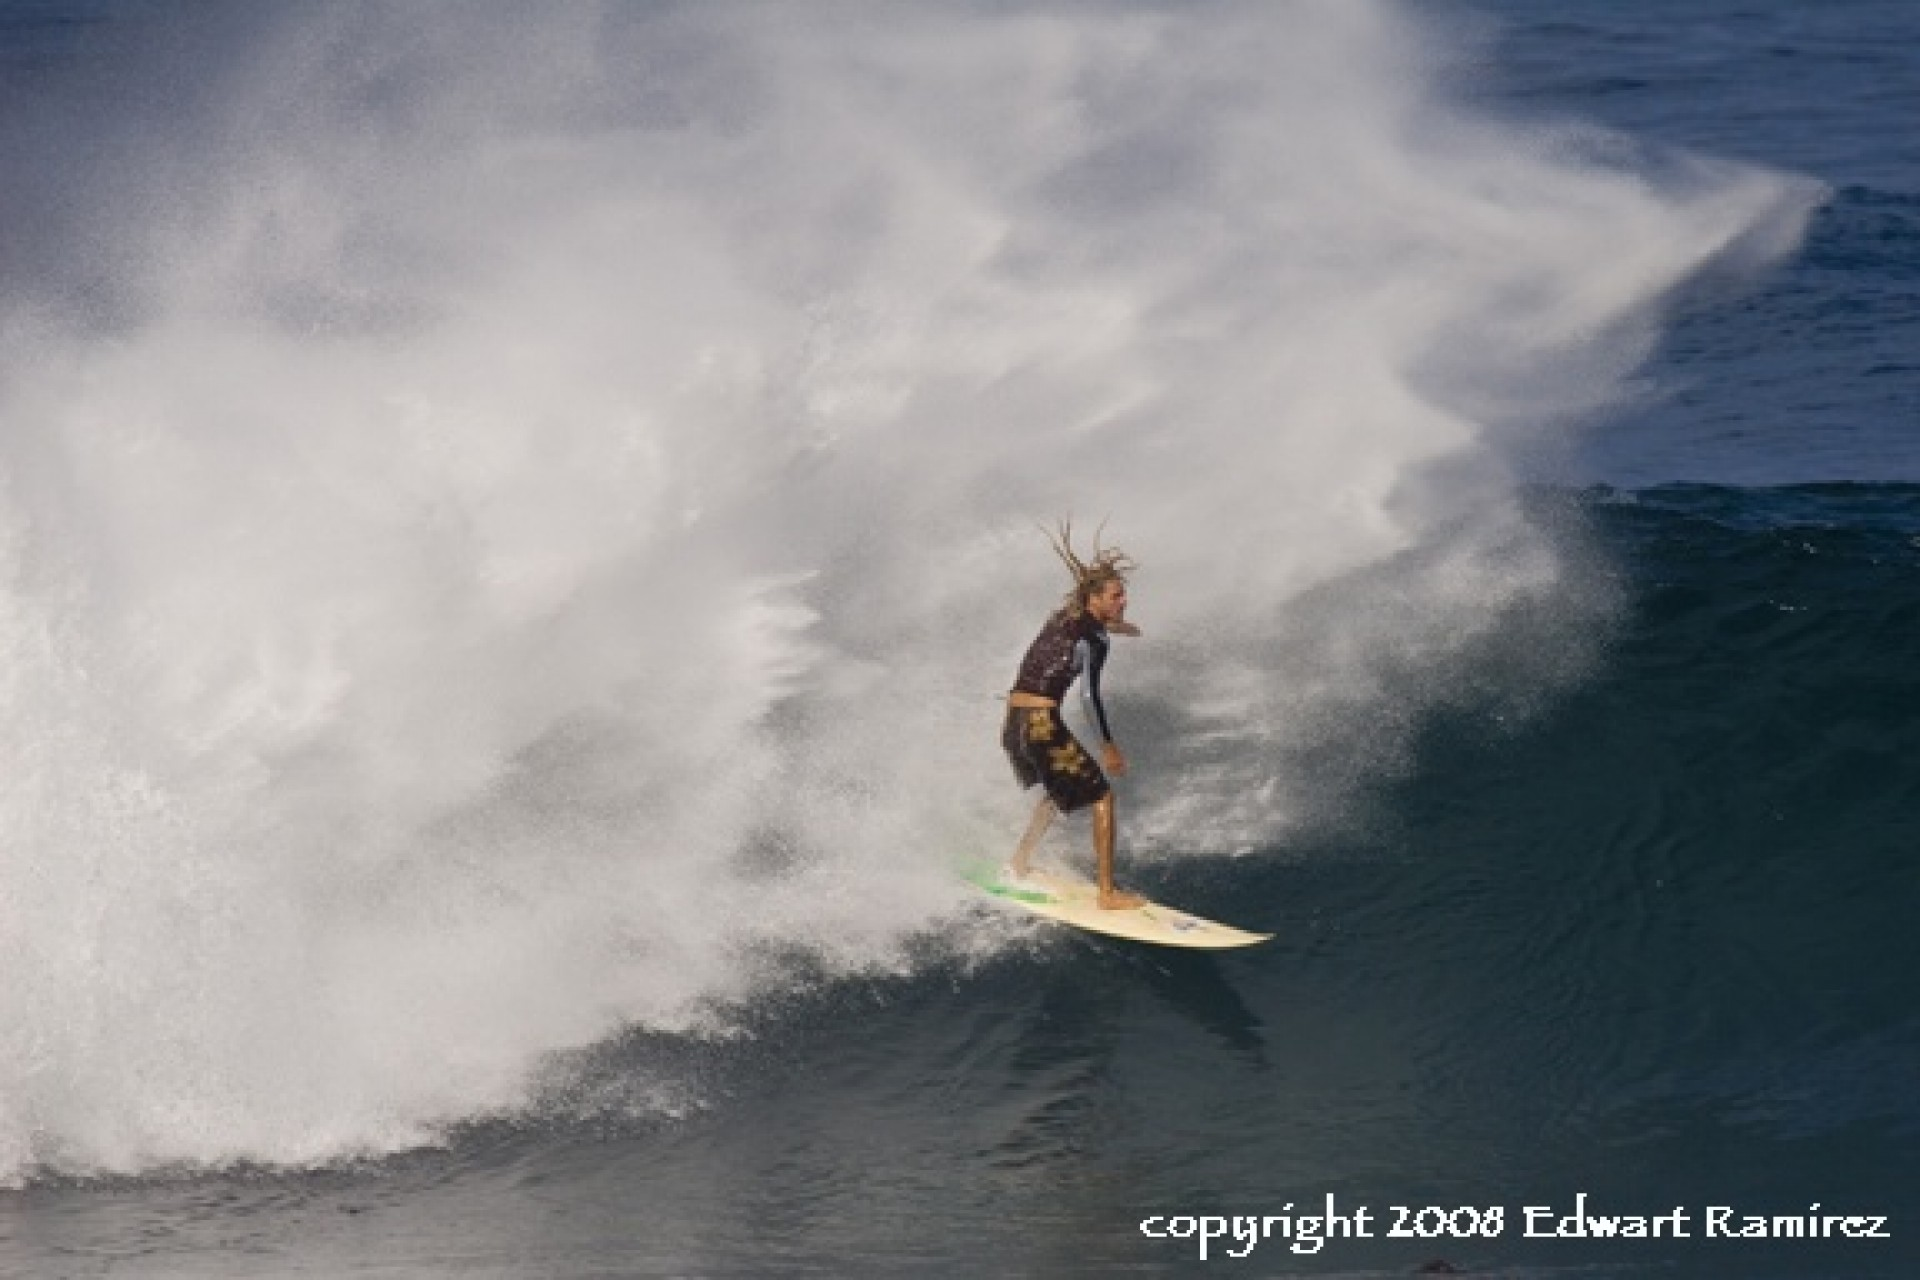 Edwart Ramirez's photo of Pipeline & Backdoor